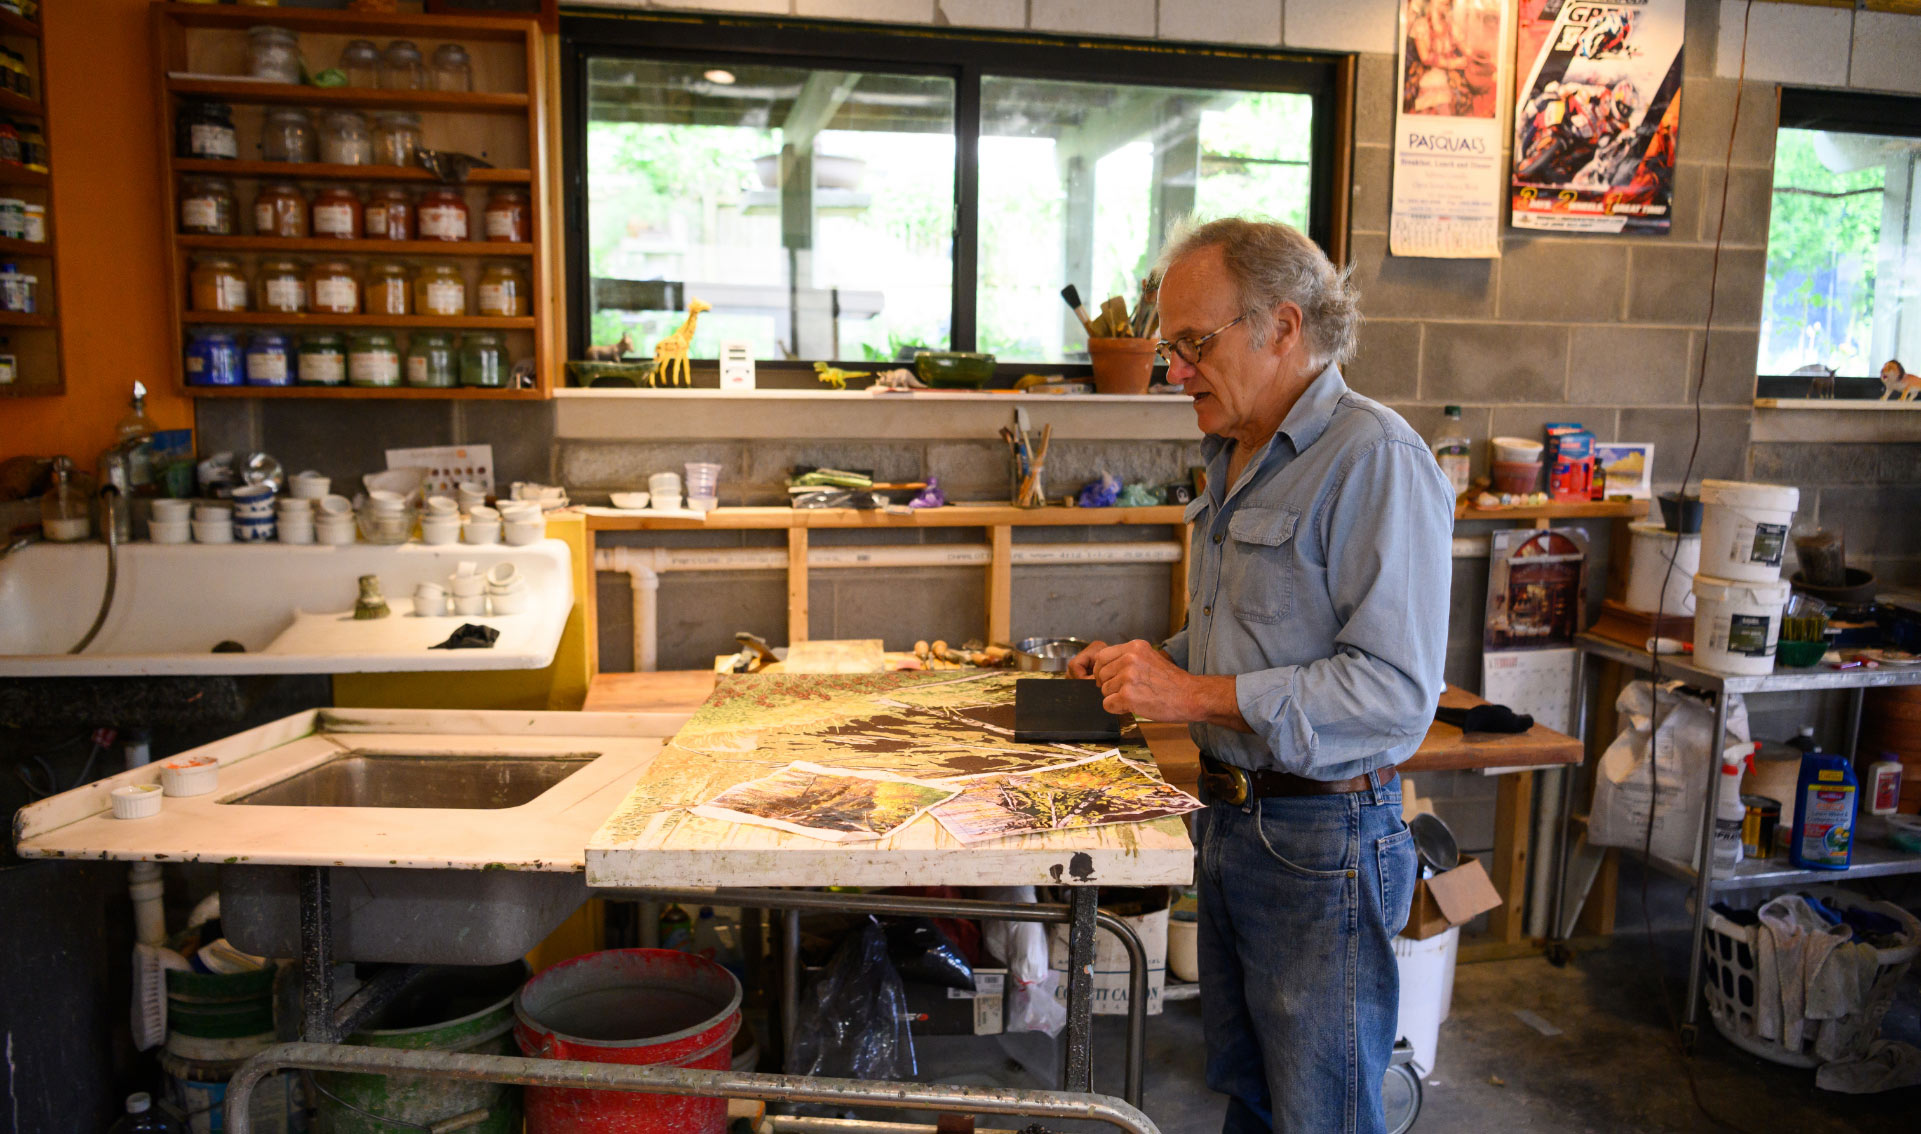 We see Lynn standing at a worktable in his studio in front of an in-progress painting. The painting has several reference photos on it.